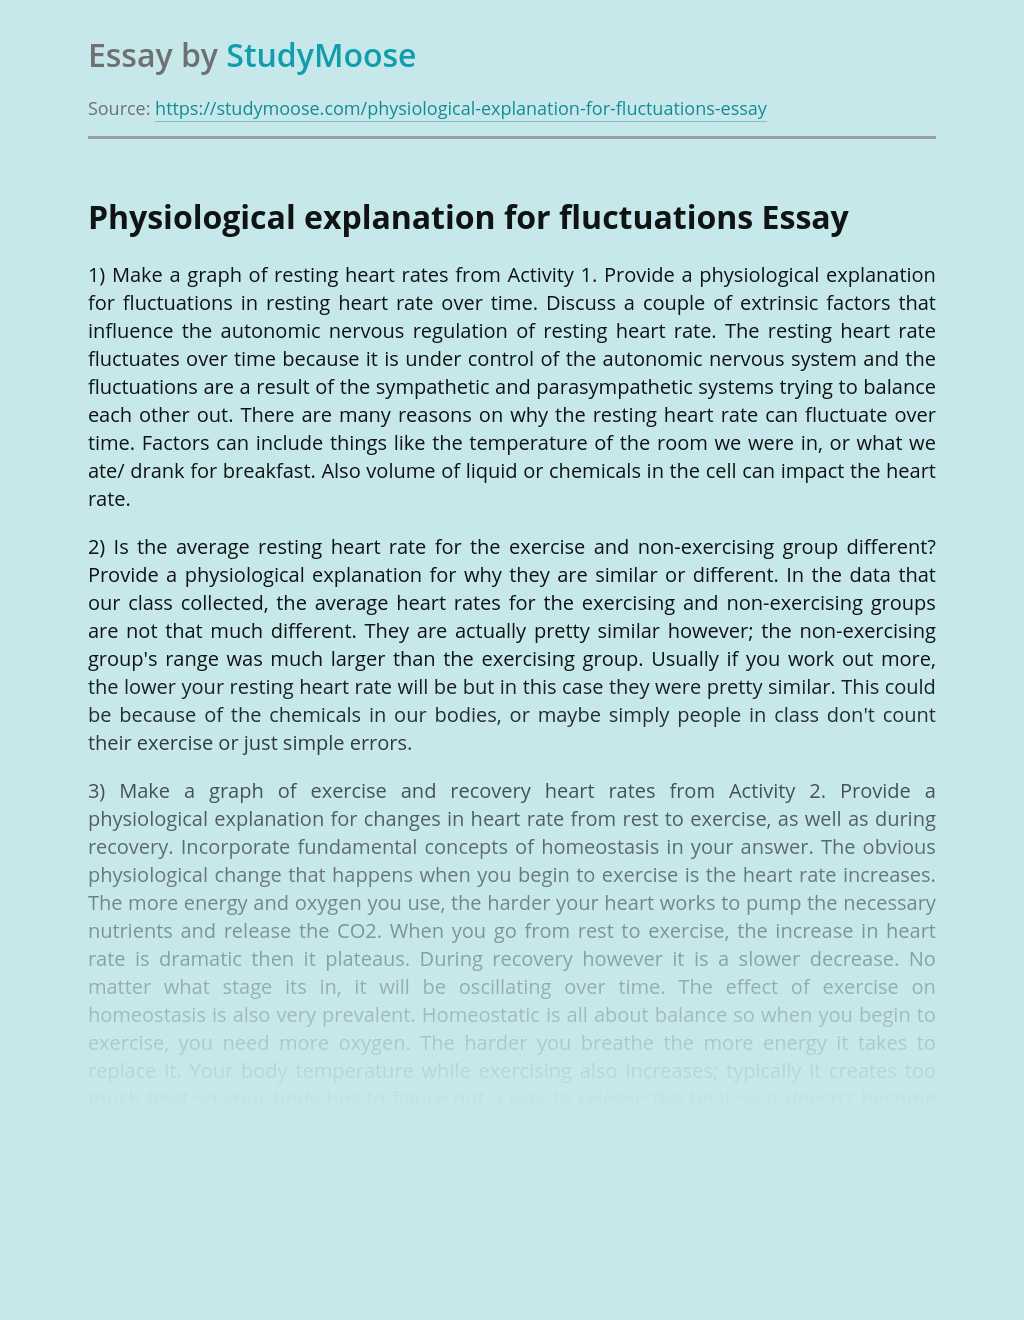 Physiological explanation for fluctuations